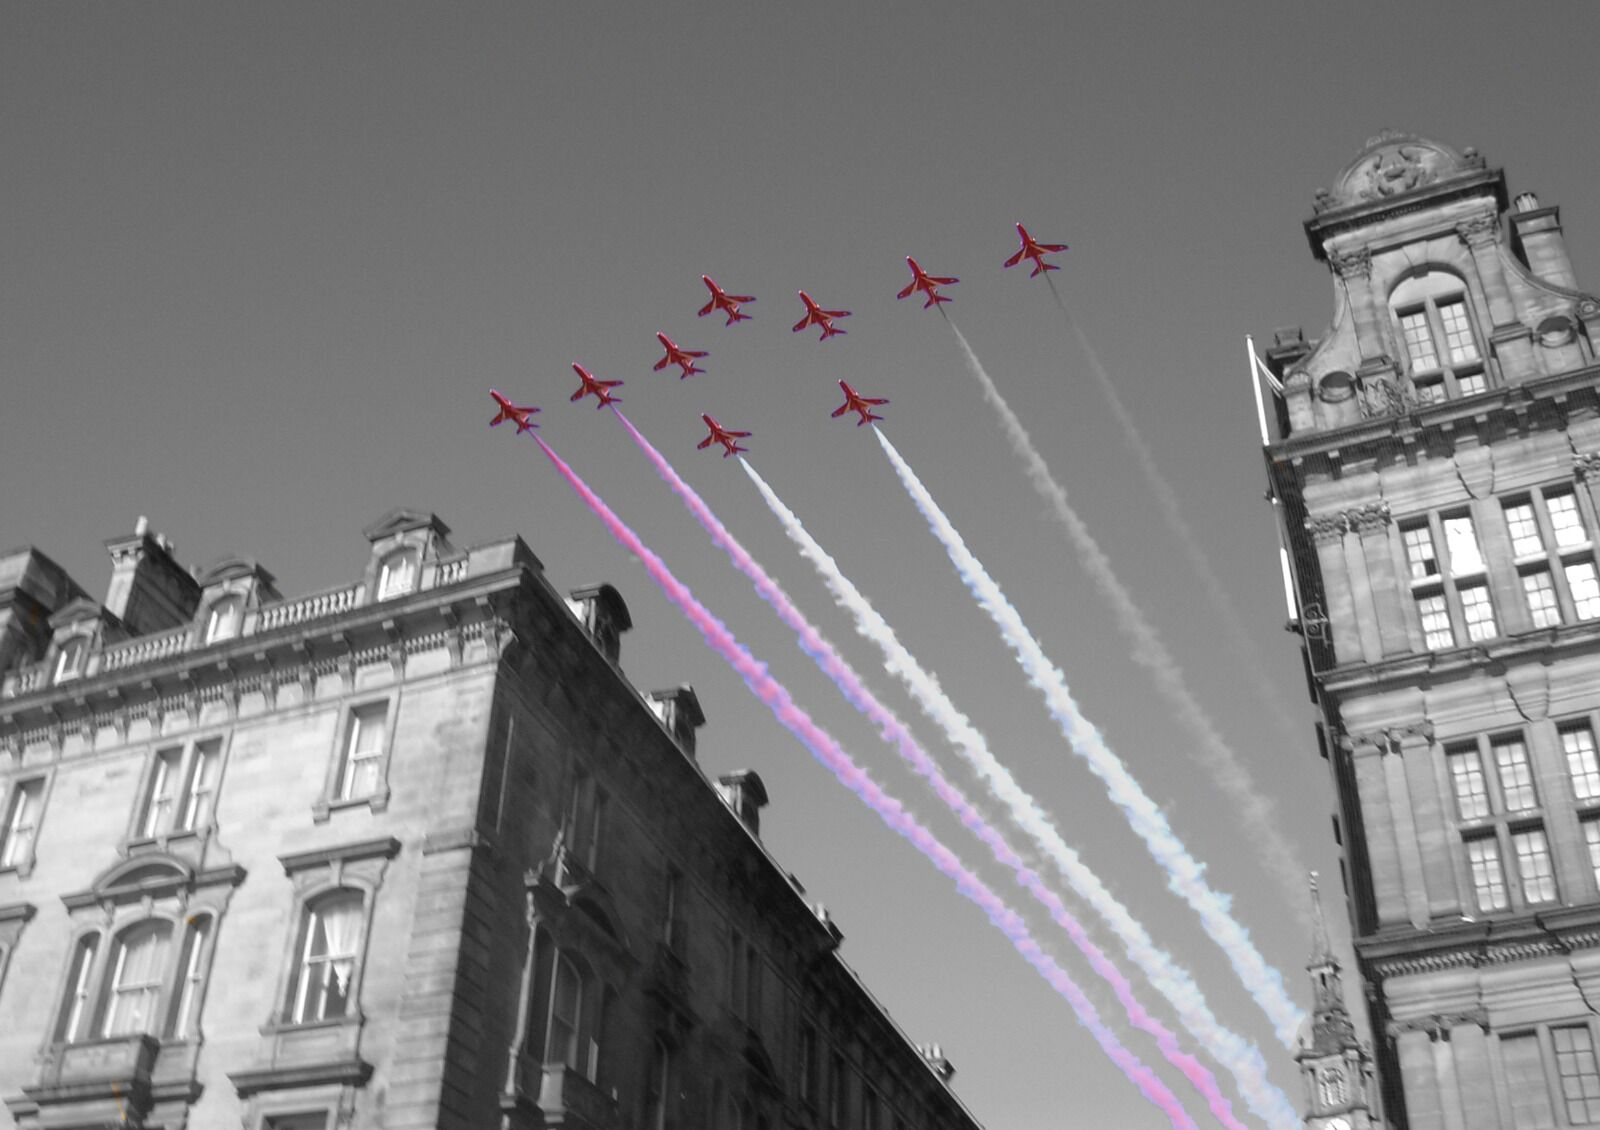 Quayside Red Arrows Colour  Splash